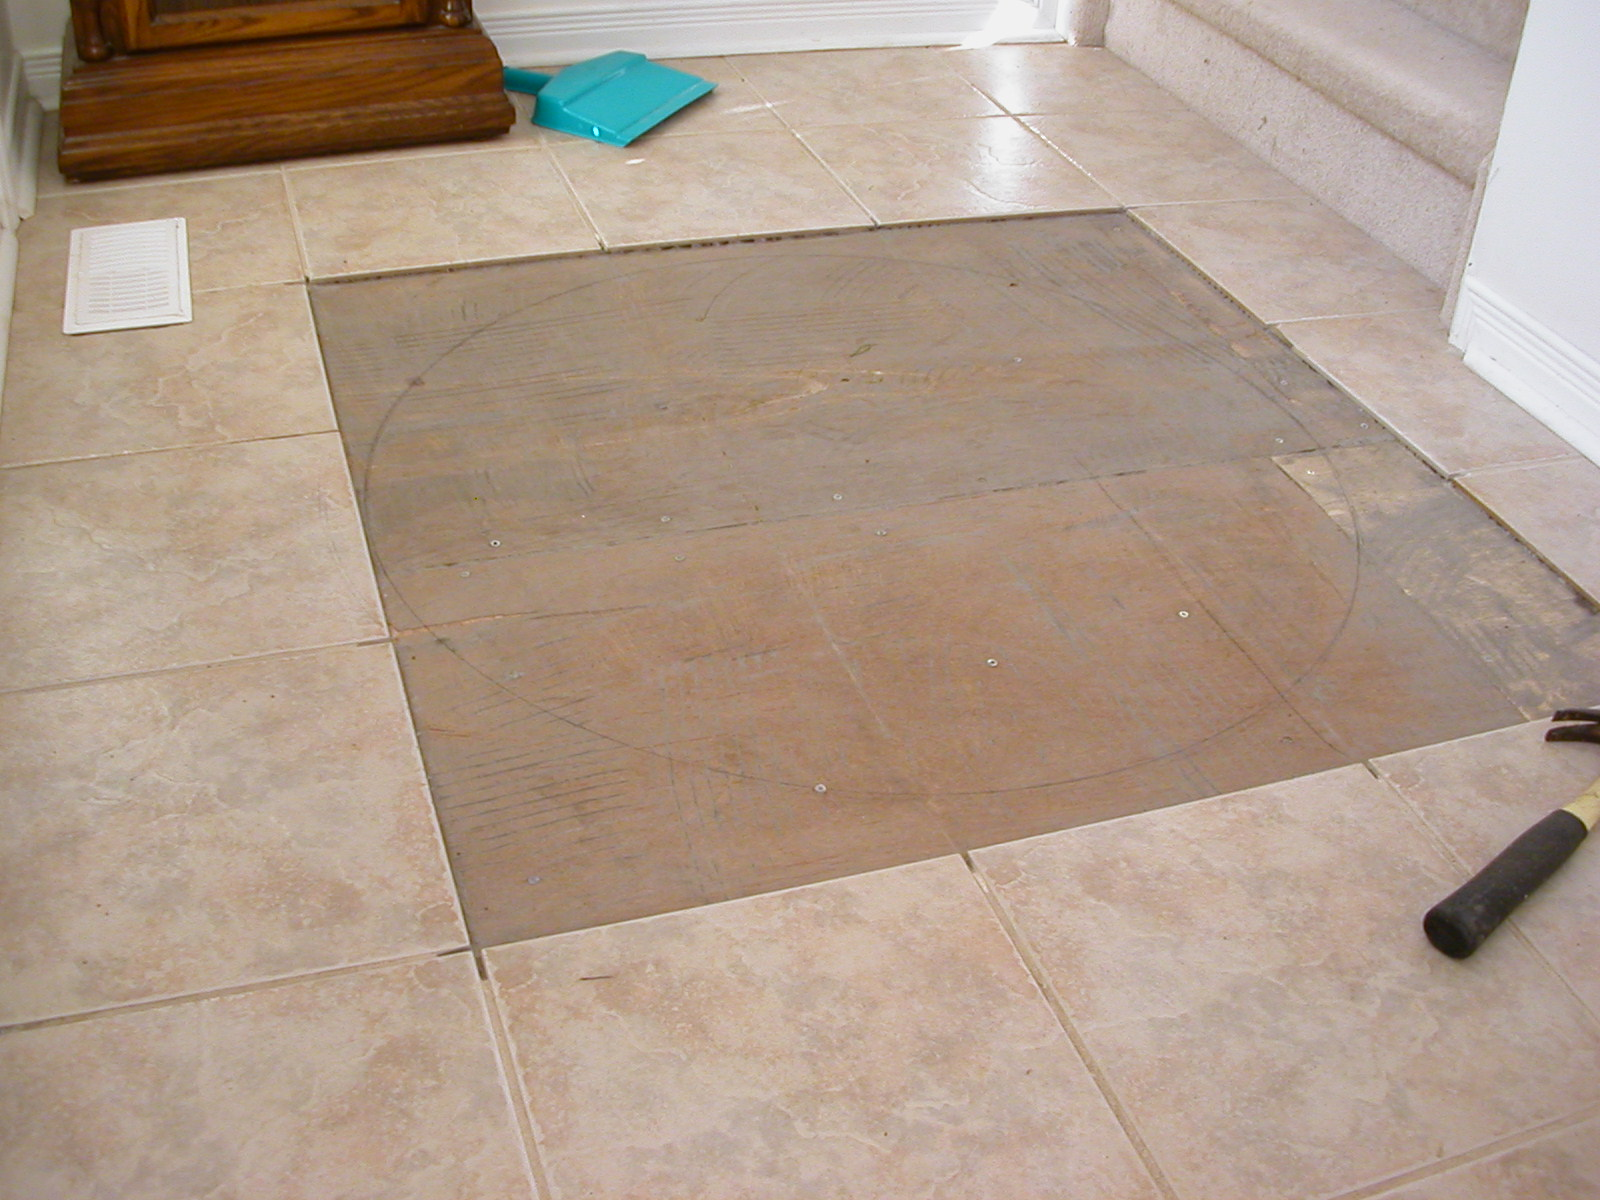 Picture of Remove Some Floor Tile